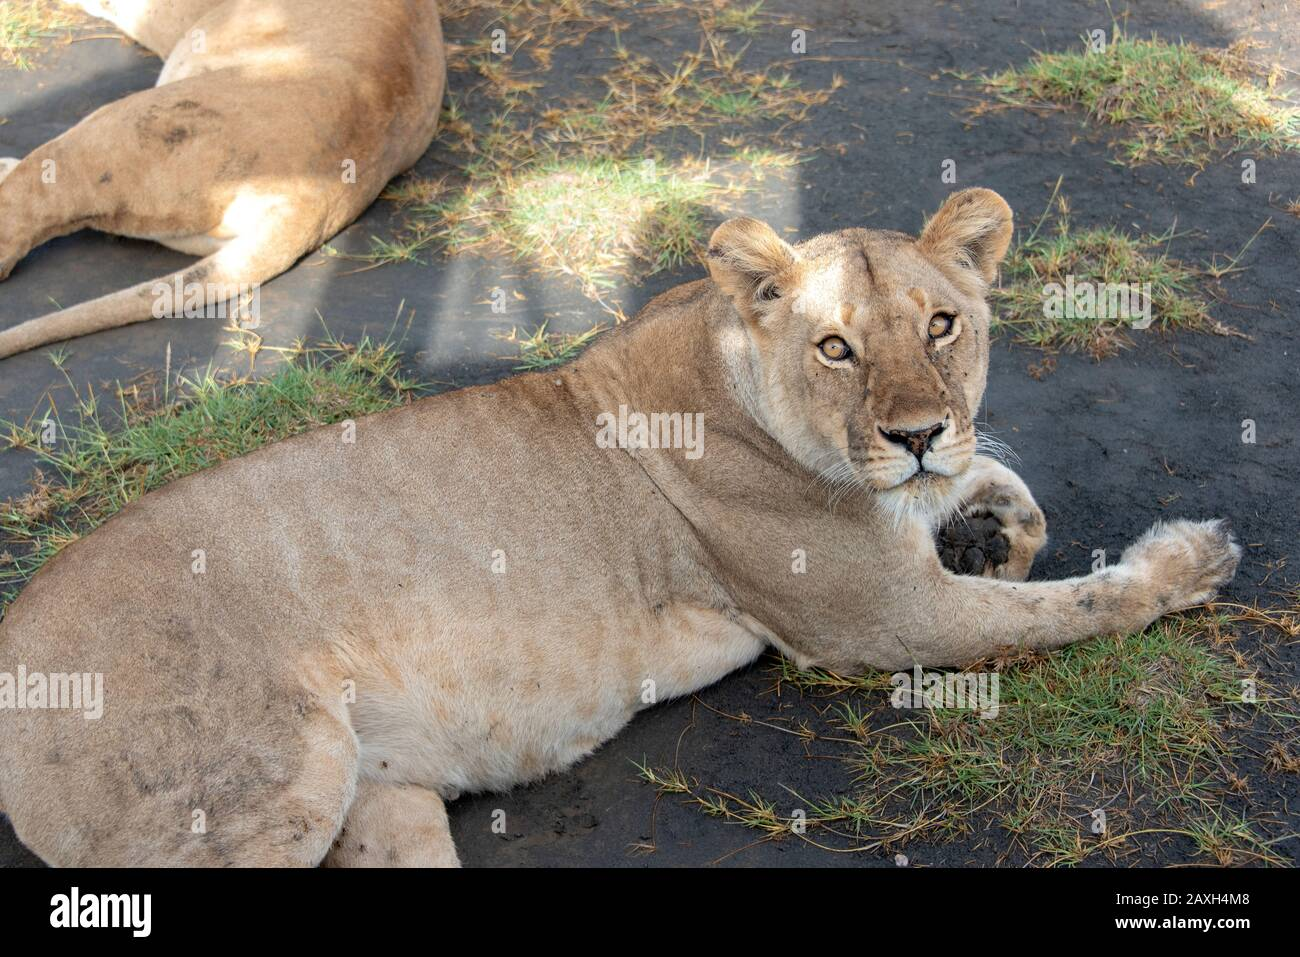 Lioness checking out the safari vehicle and occupants providing her shade. Stock Photo